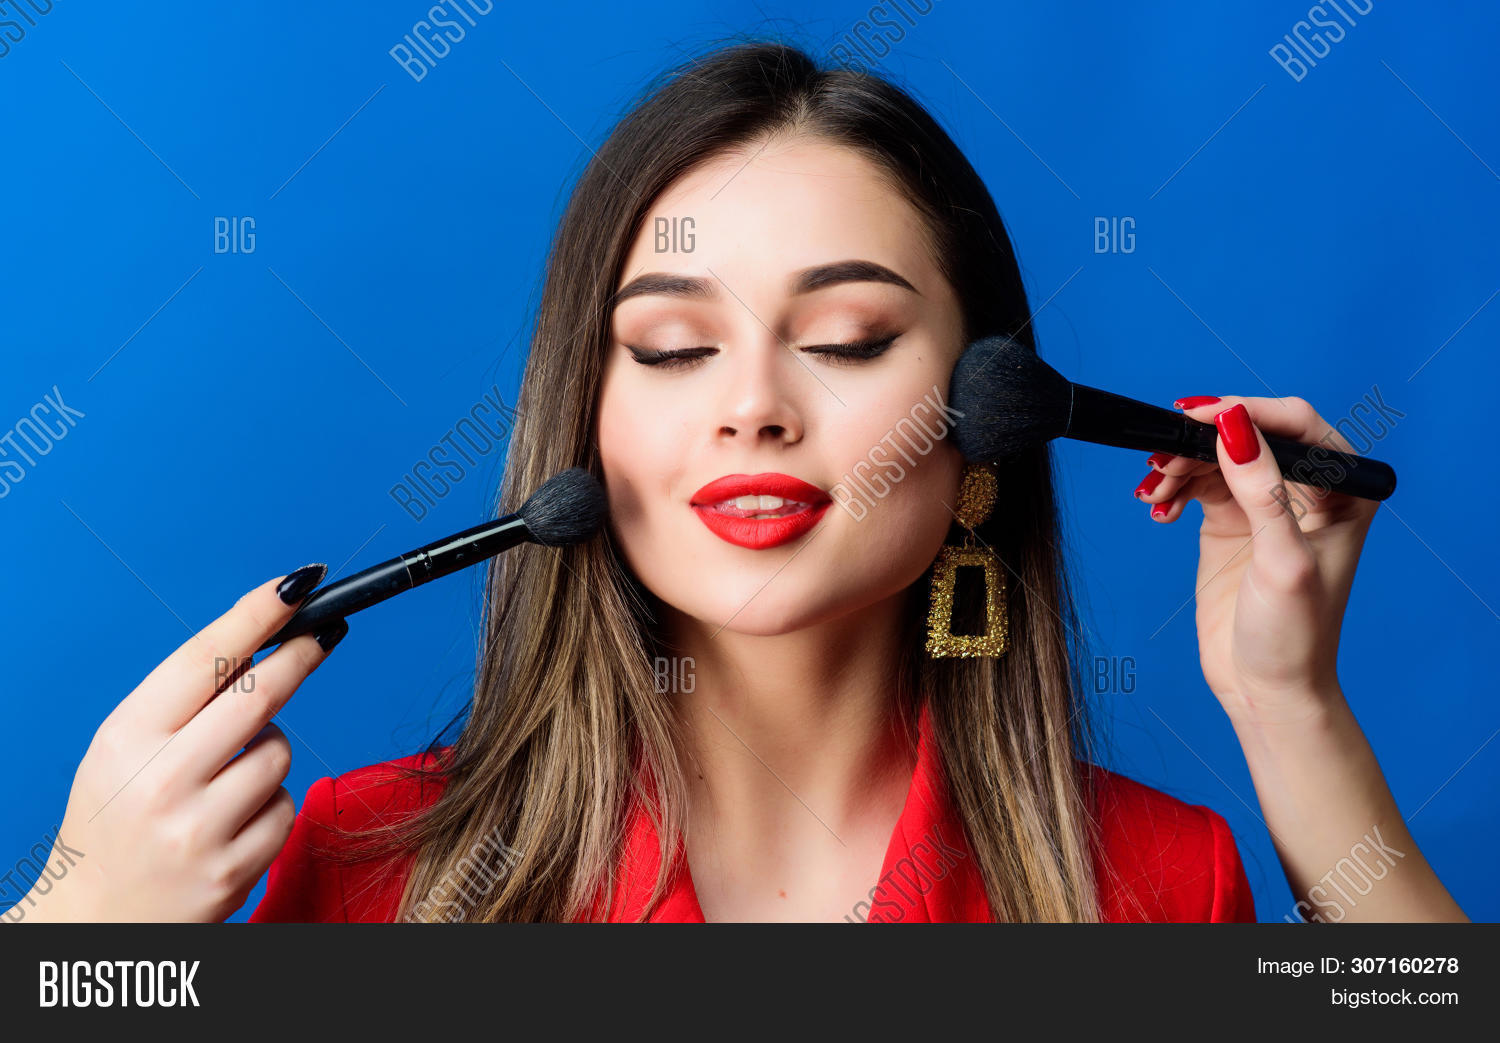 Makeup Courses  Image & Photo (Free Trial) | Bigstock